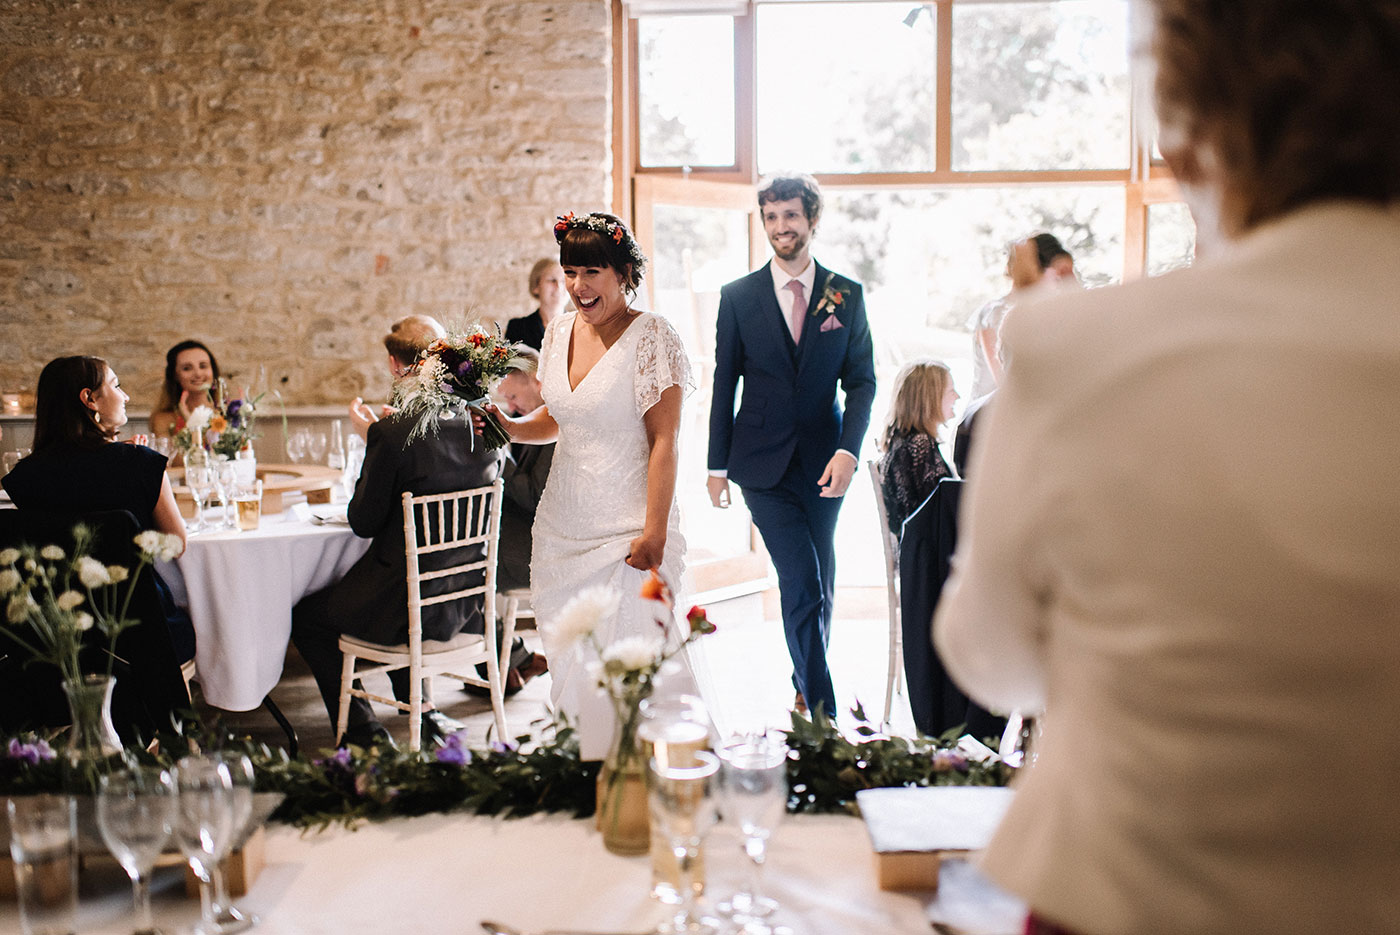 Wick Farm Bath Wedding Venue